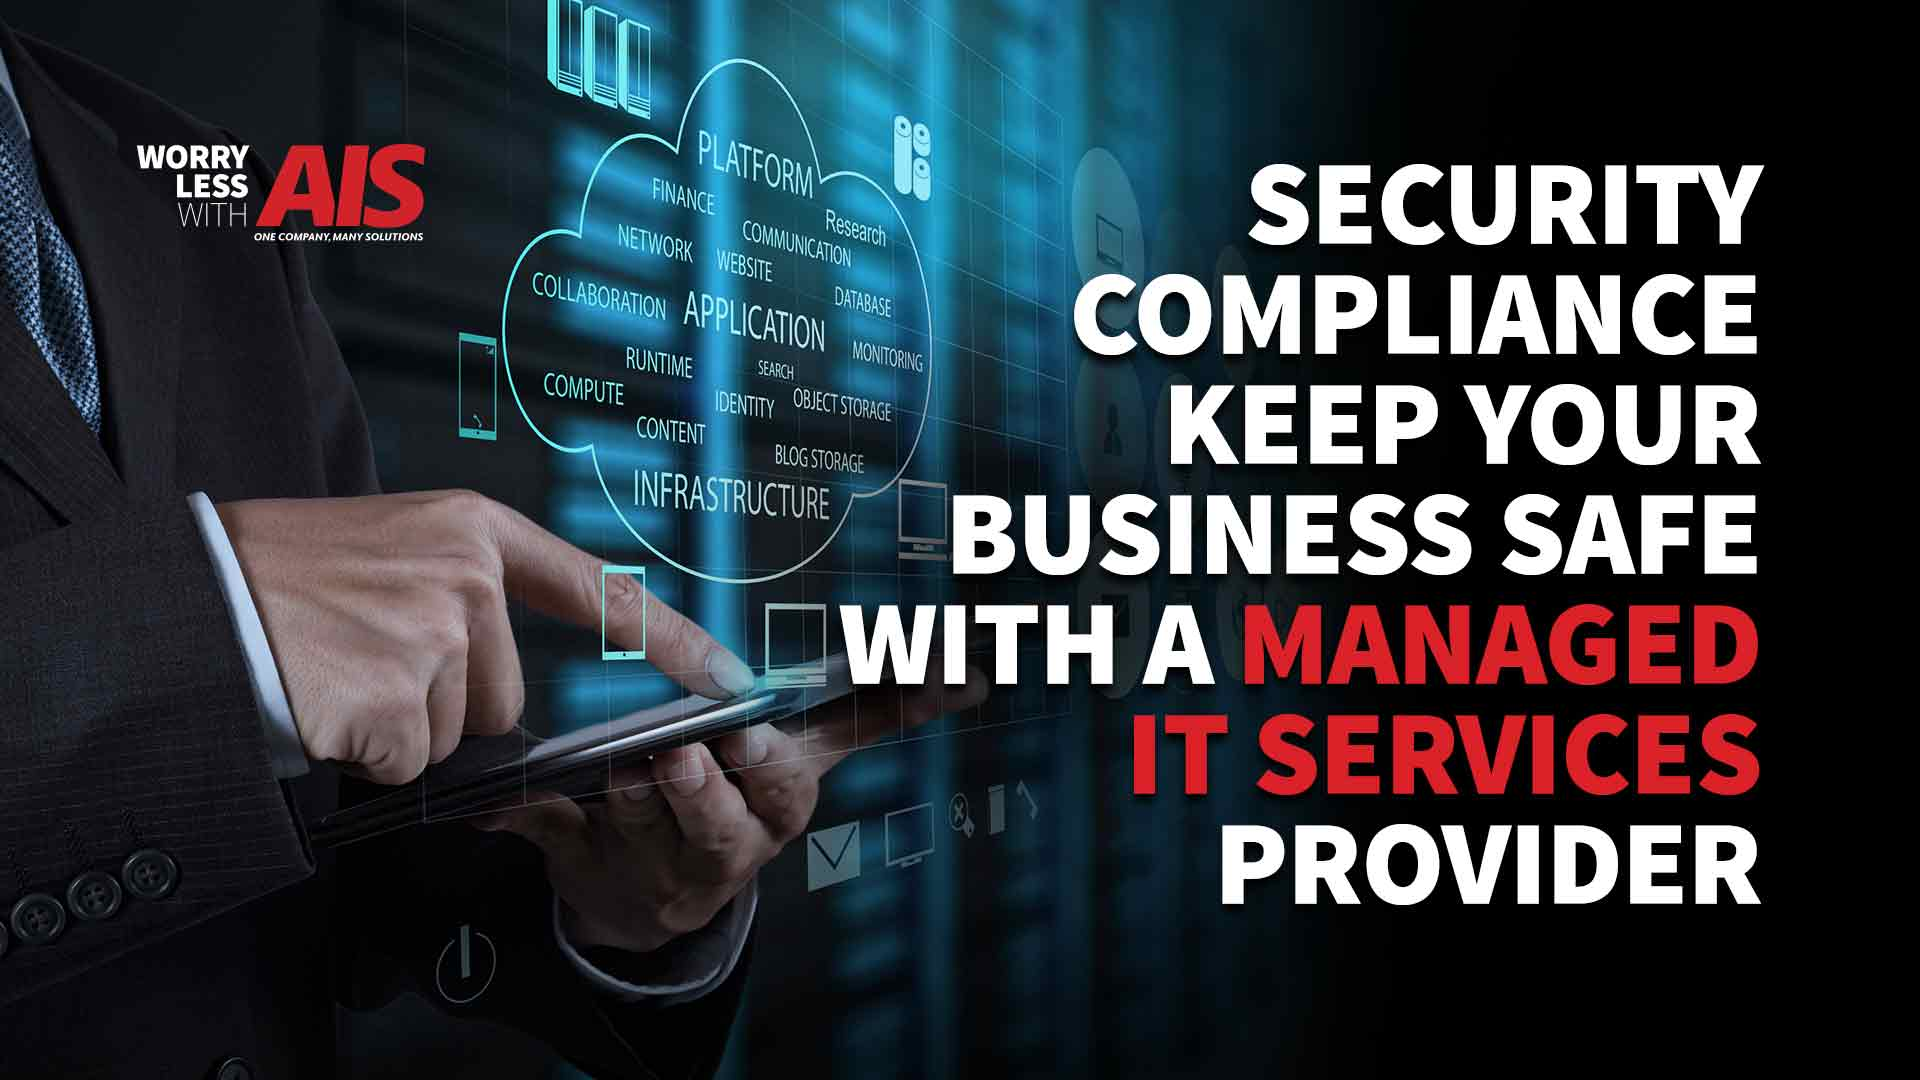 security-compliance-business-safe-managed-IT-services-provider